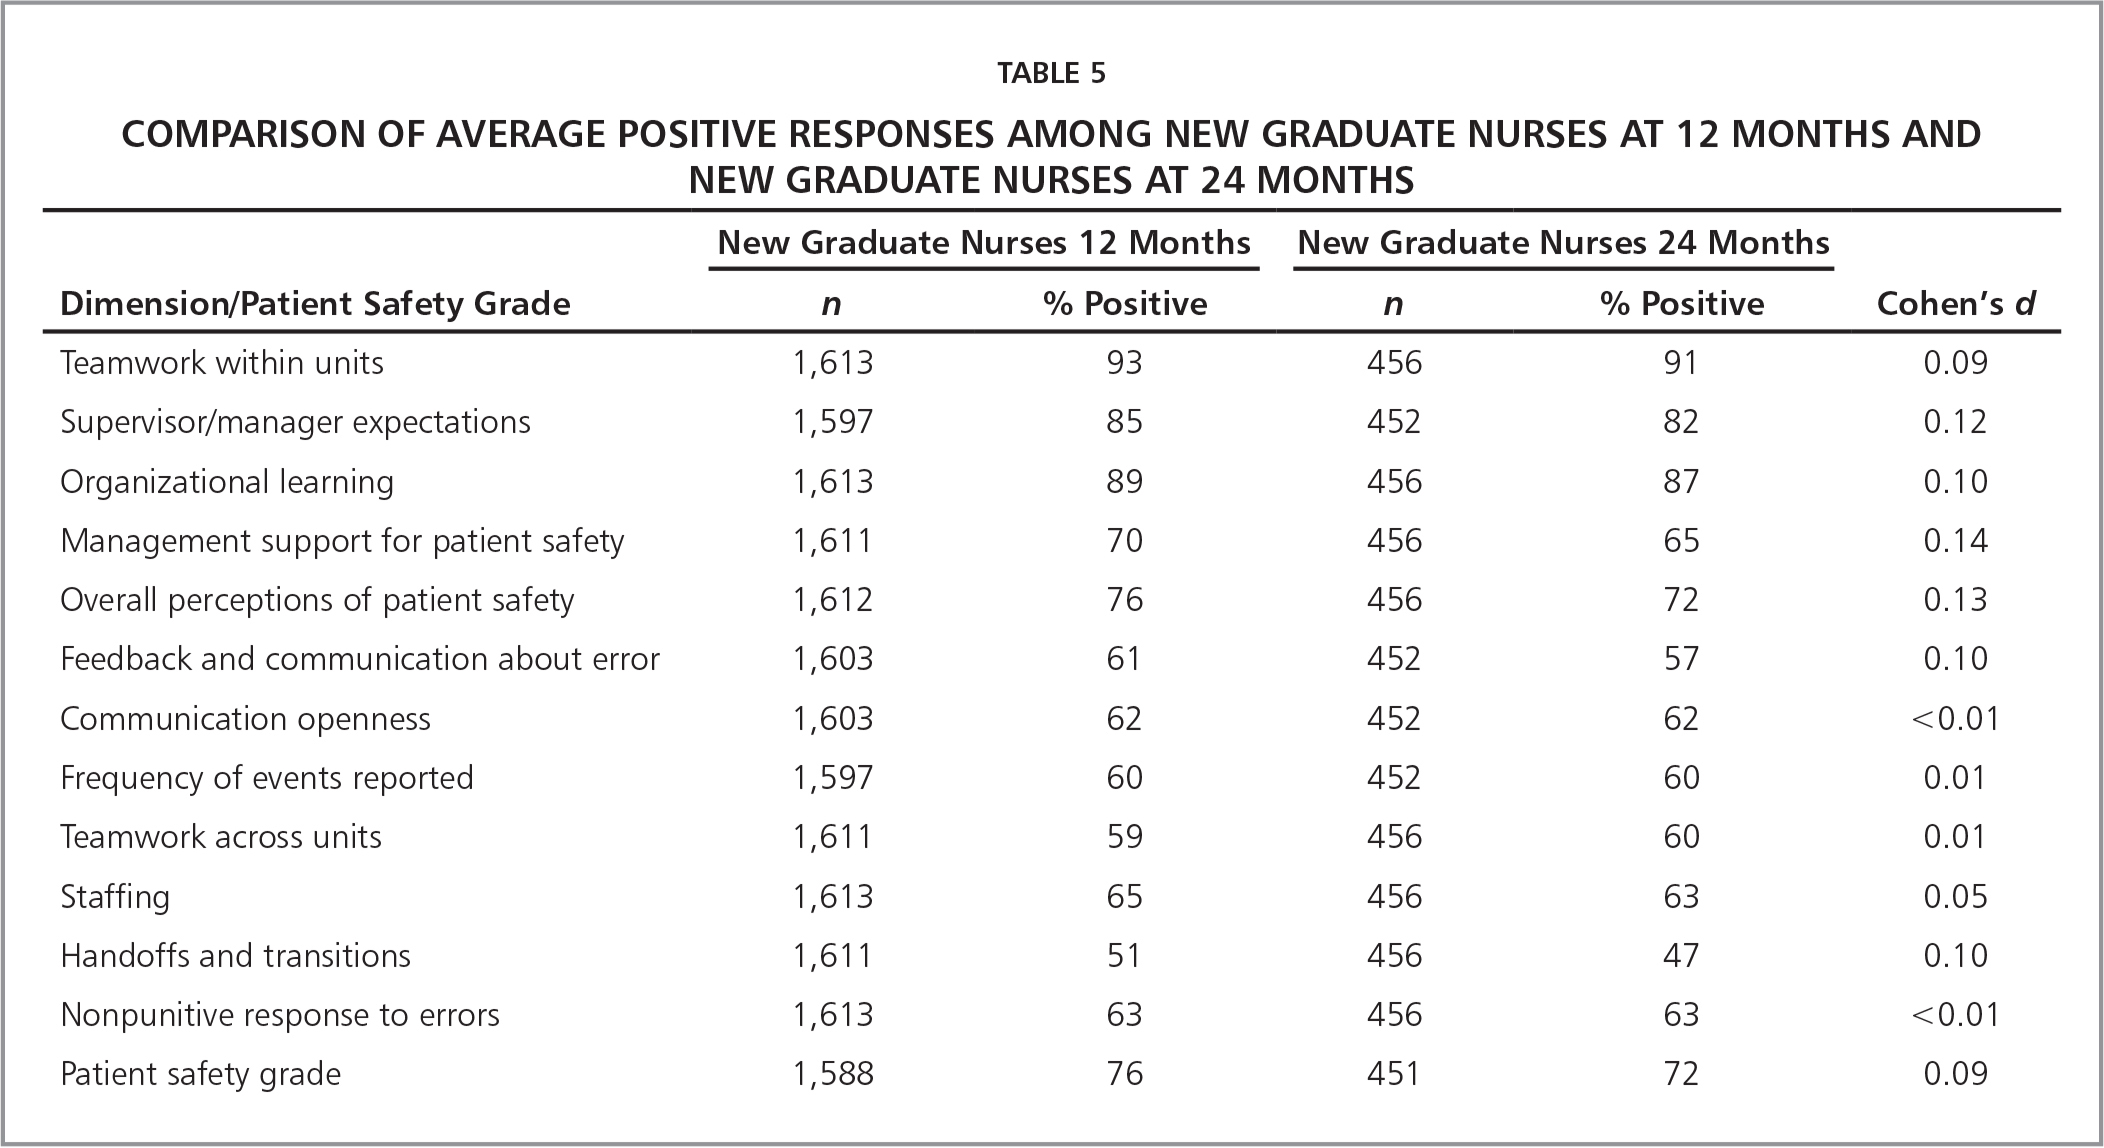 Comparison of Average Positive Responses among New Graduate Nurses at 12 Months and New Graduate Nurses at 24 Months